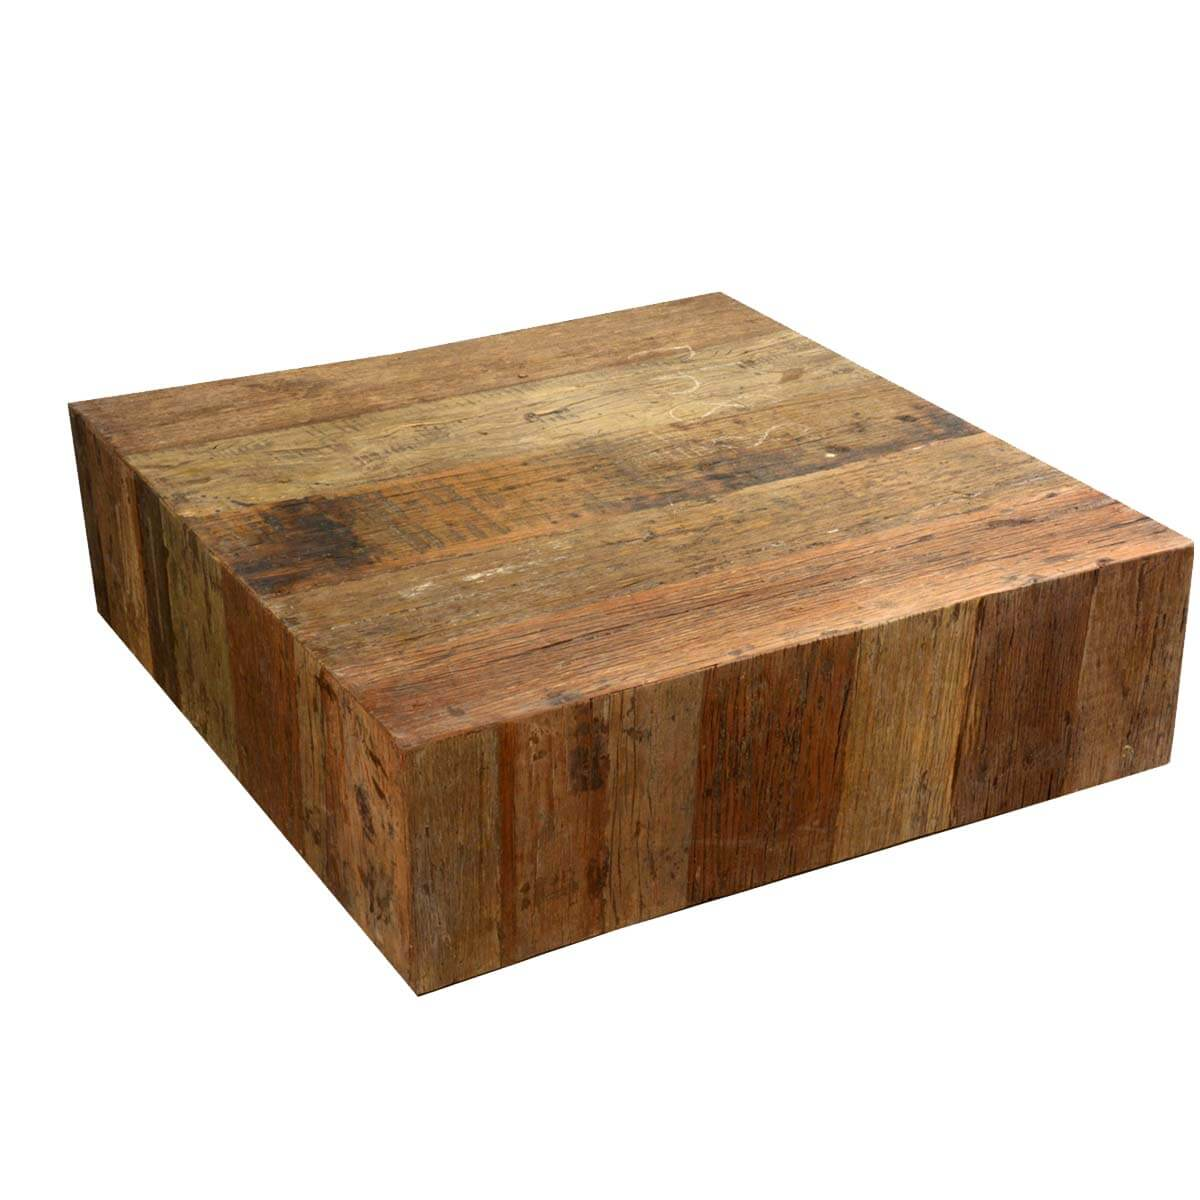 Appalachian Rustic Railroad Wood Square Box Style Coffee Table